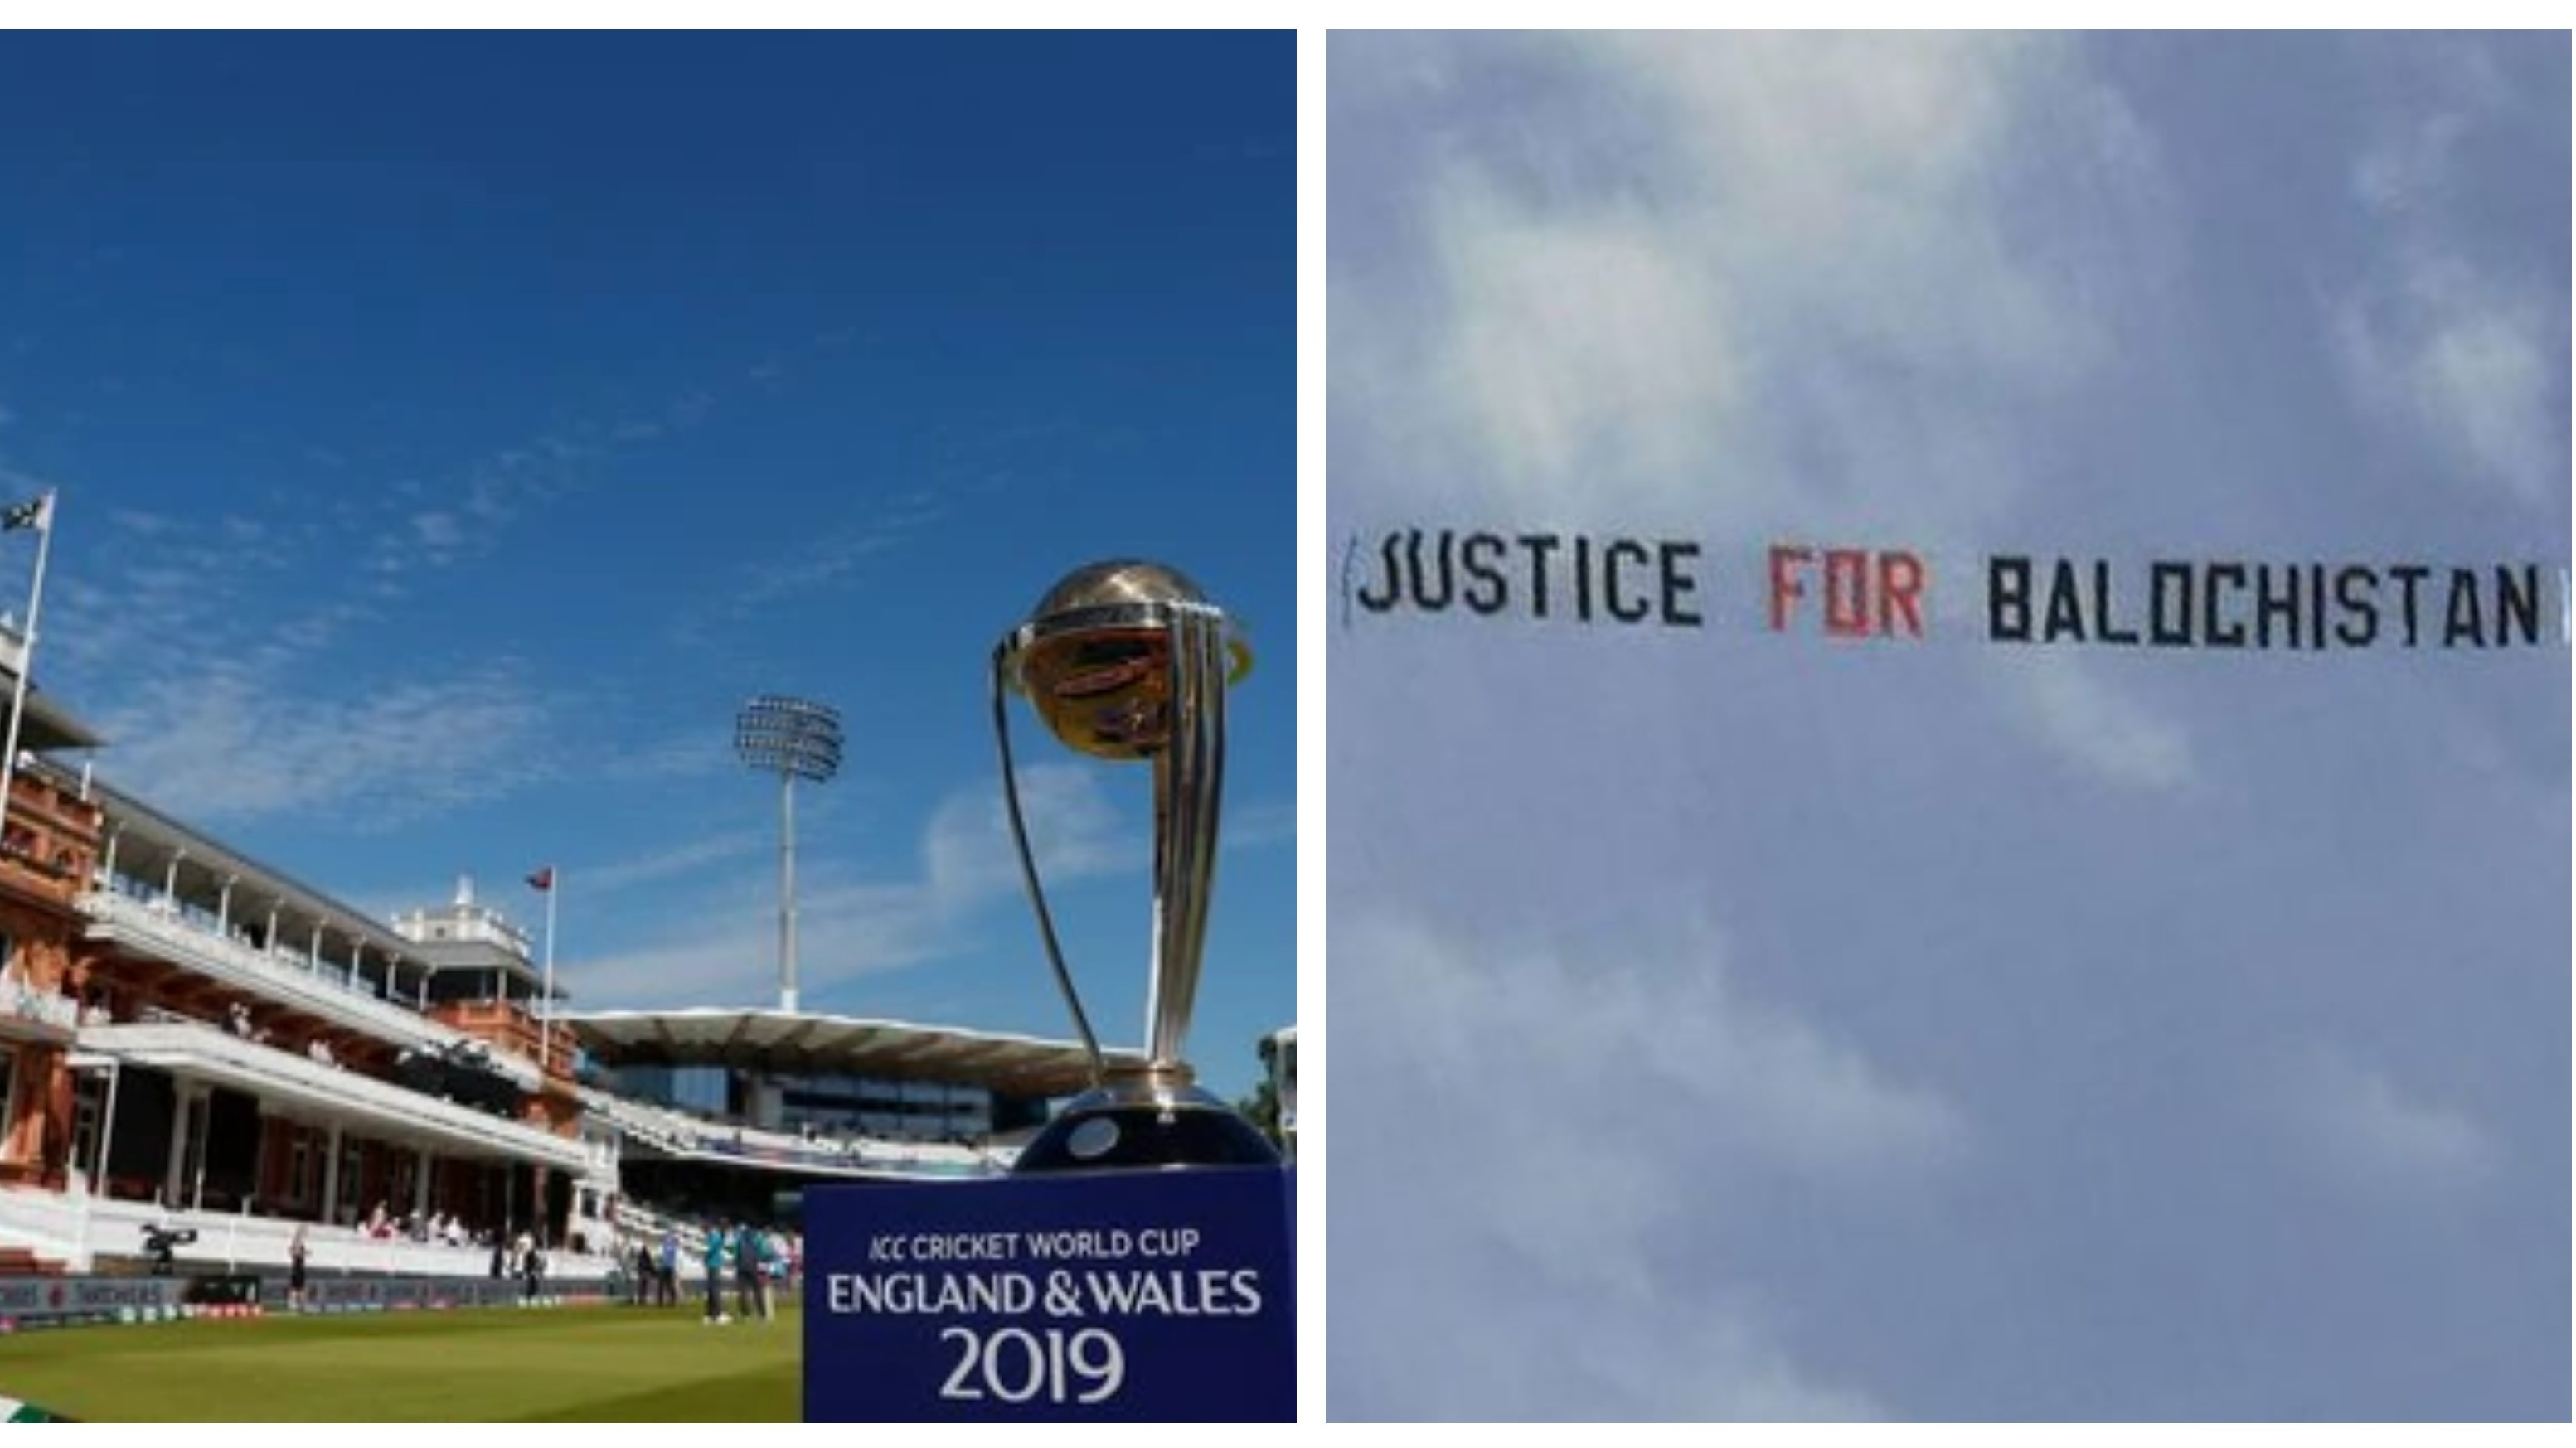 CWC 2019: Lord's air space likely to remain shut during England-New Zealand final